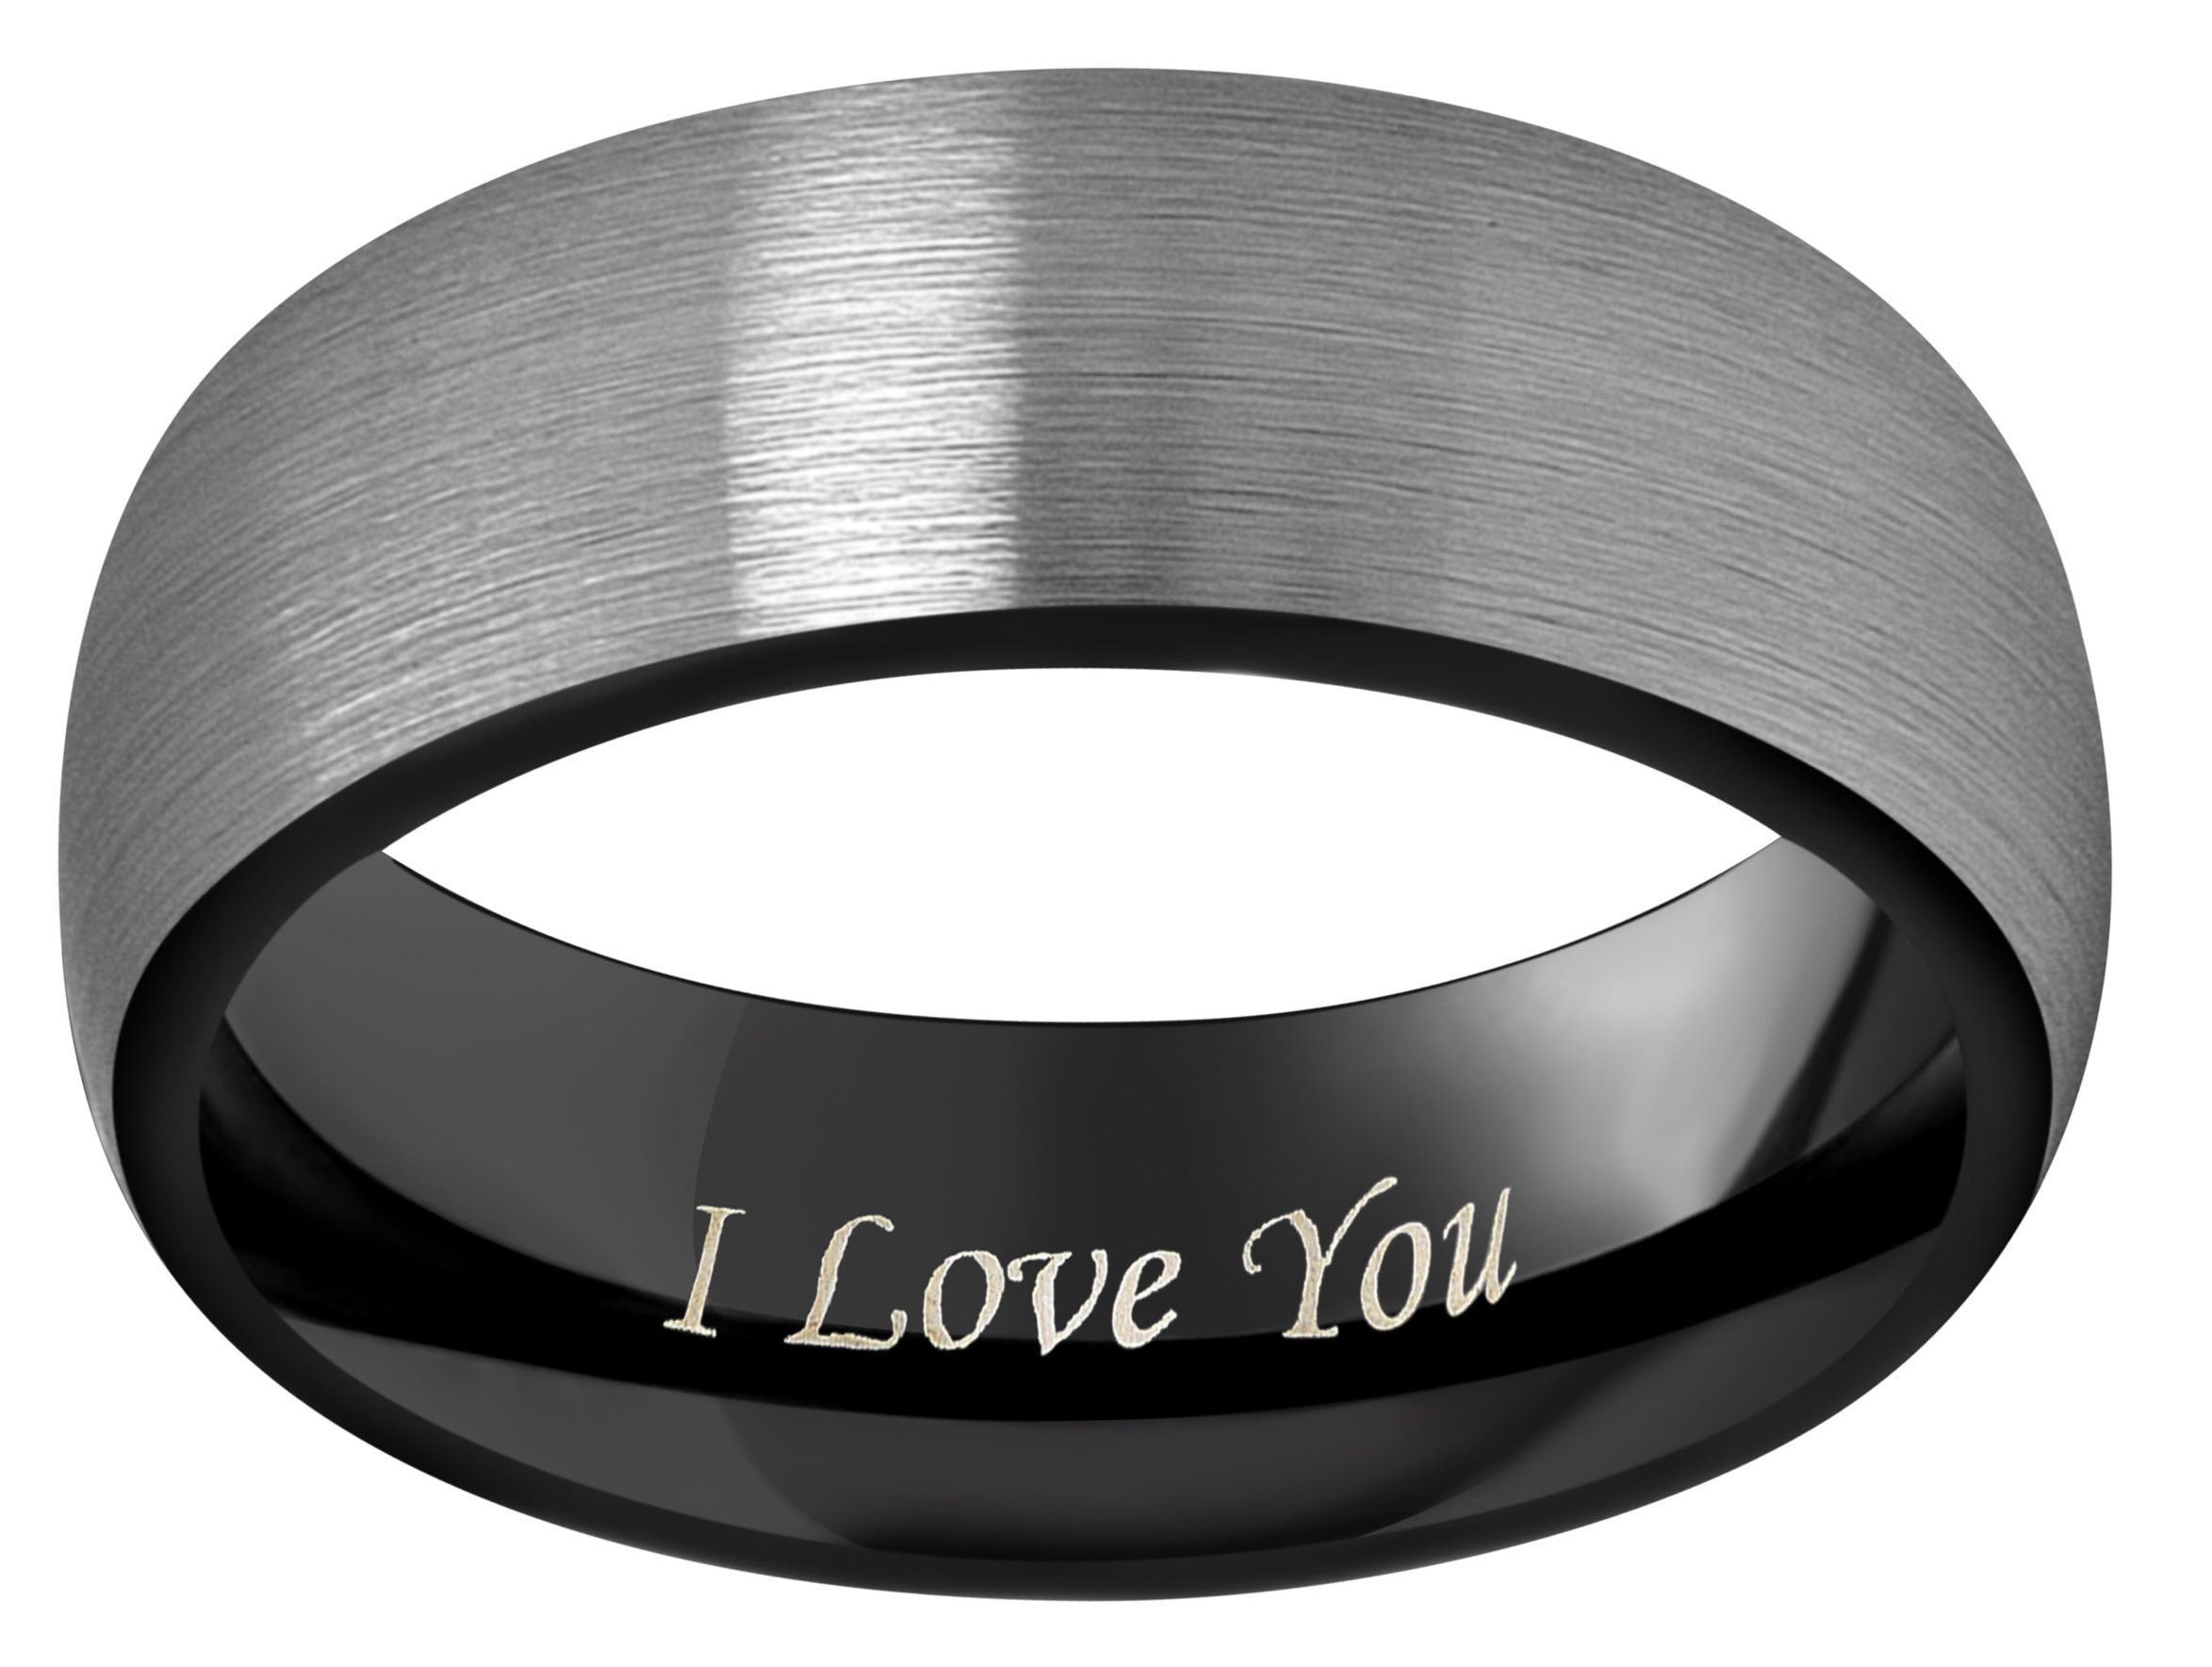 CROWNAL 4mm 6mm 8mm Black Tungsten Couple Wedding Bands Rings Men Women Dome Brushed Finish Engraved I Love You Size 3.5 To 17 (8mm,12) by CROWNAL (Image #2)